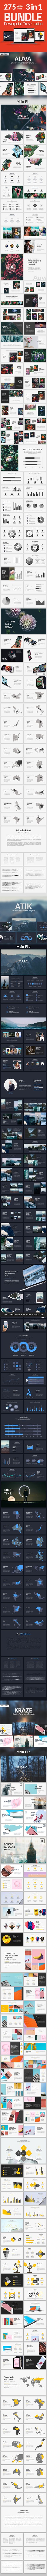 May Bundle  Creative Powerpoint Template — Powerpoint PPT #enterprise #stats • Download ➝ https://graphicriver.net/item/may-bundle-creative-powerpoint-template/19817418?ref=pxcr